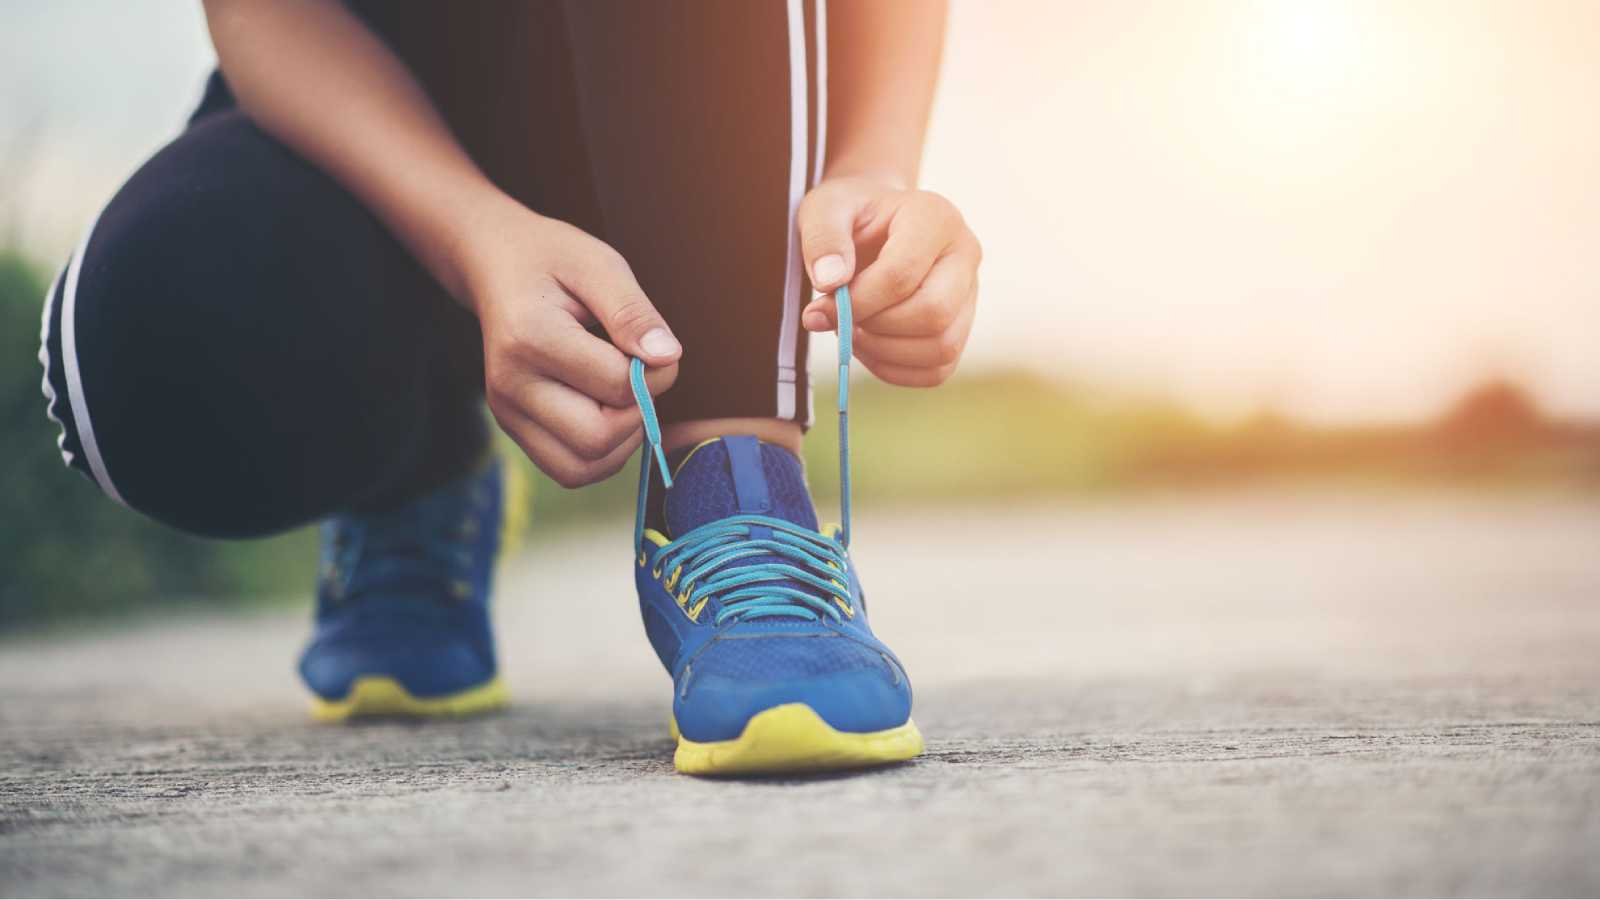 Get in shape with these 5 free walking apps